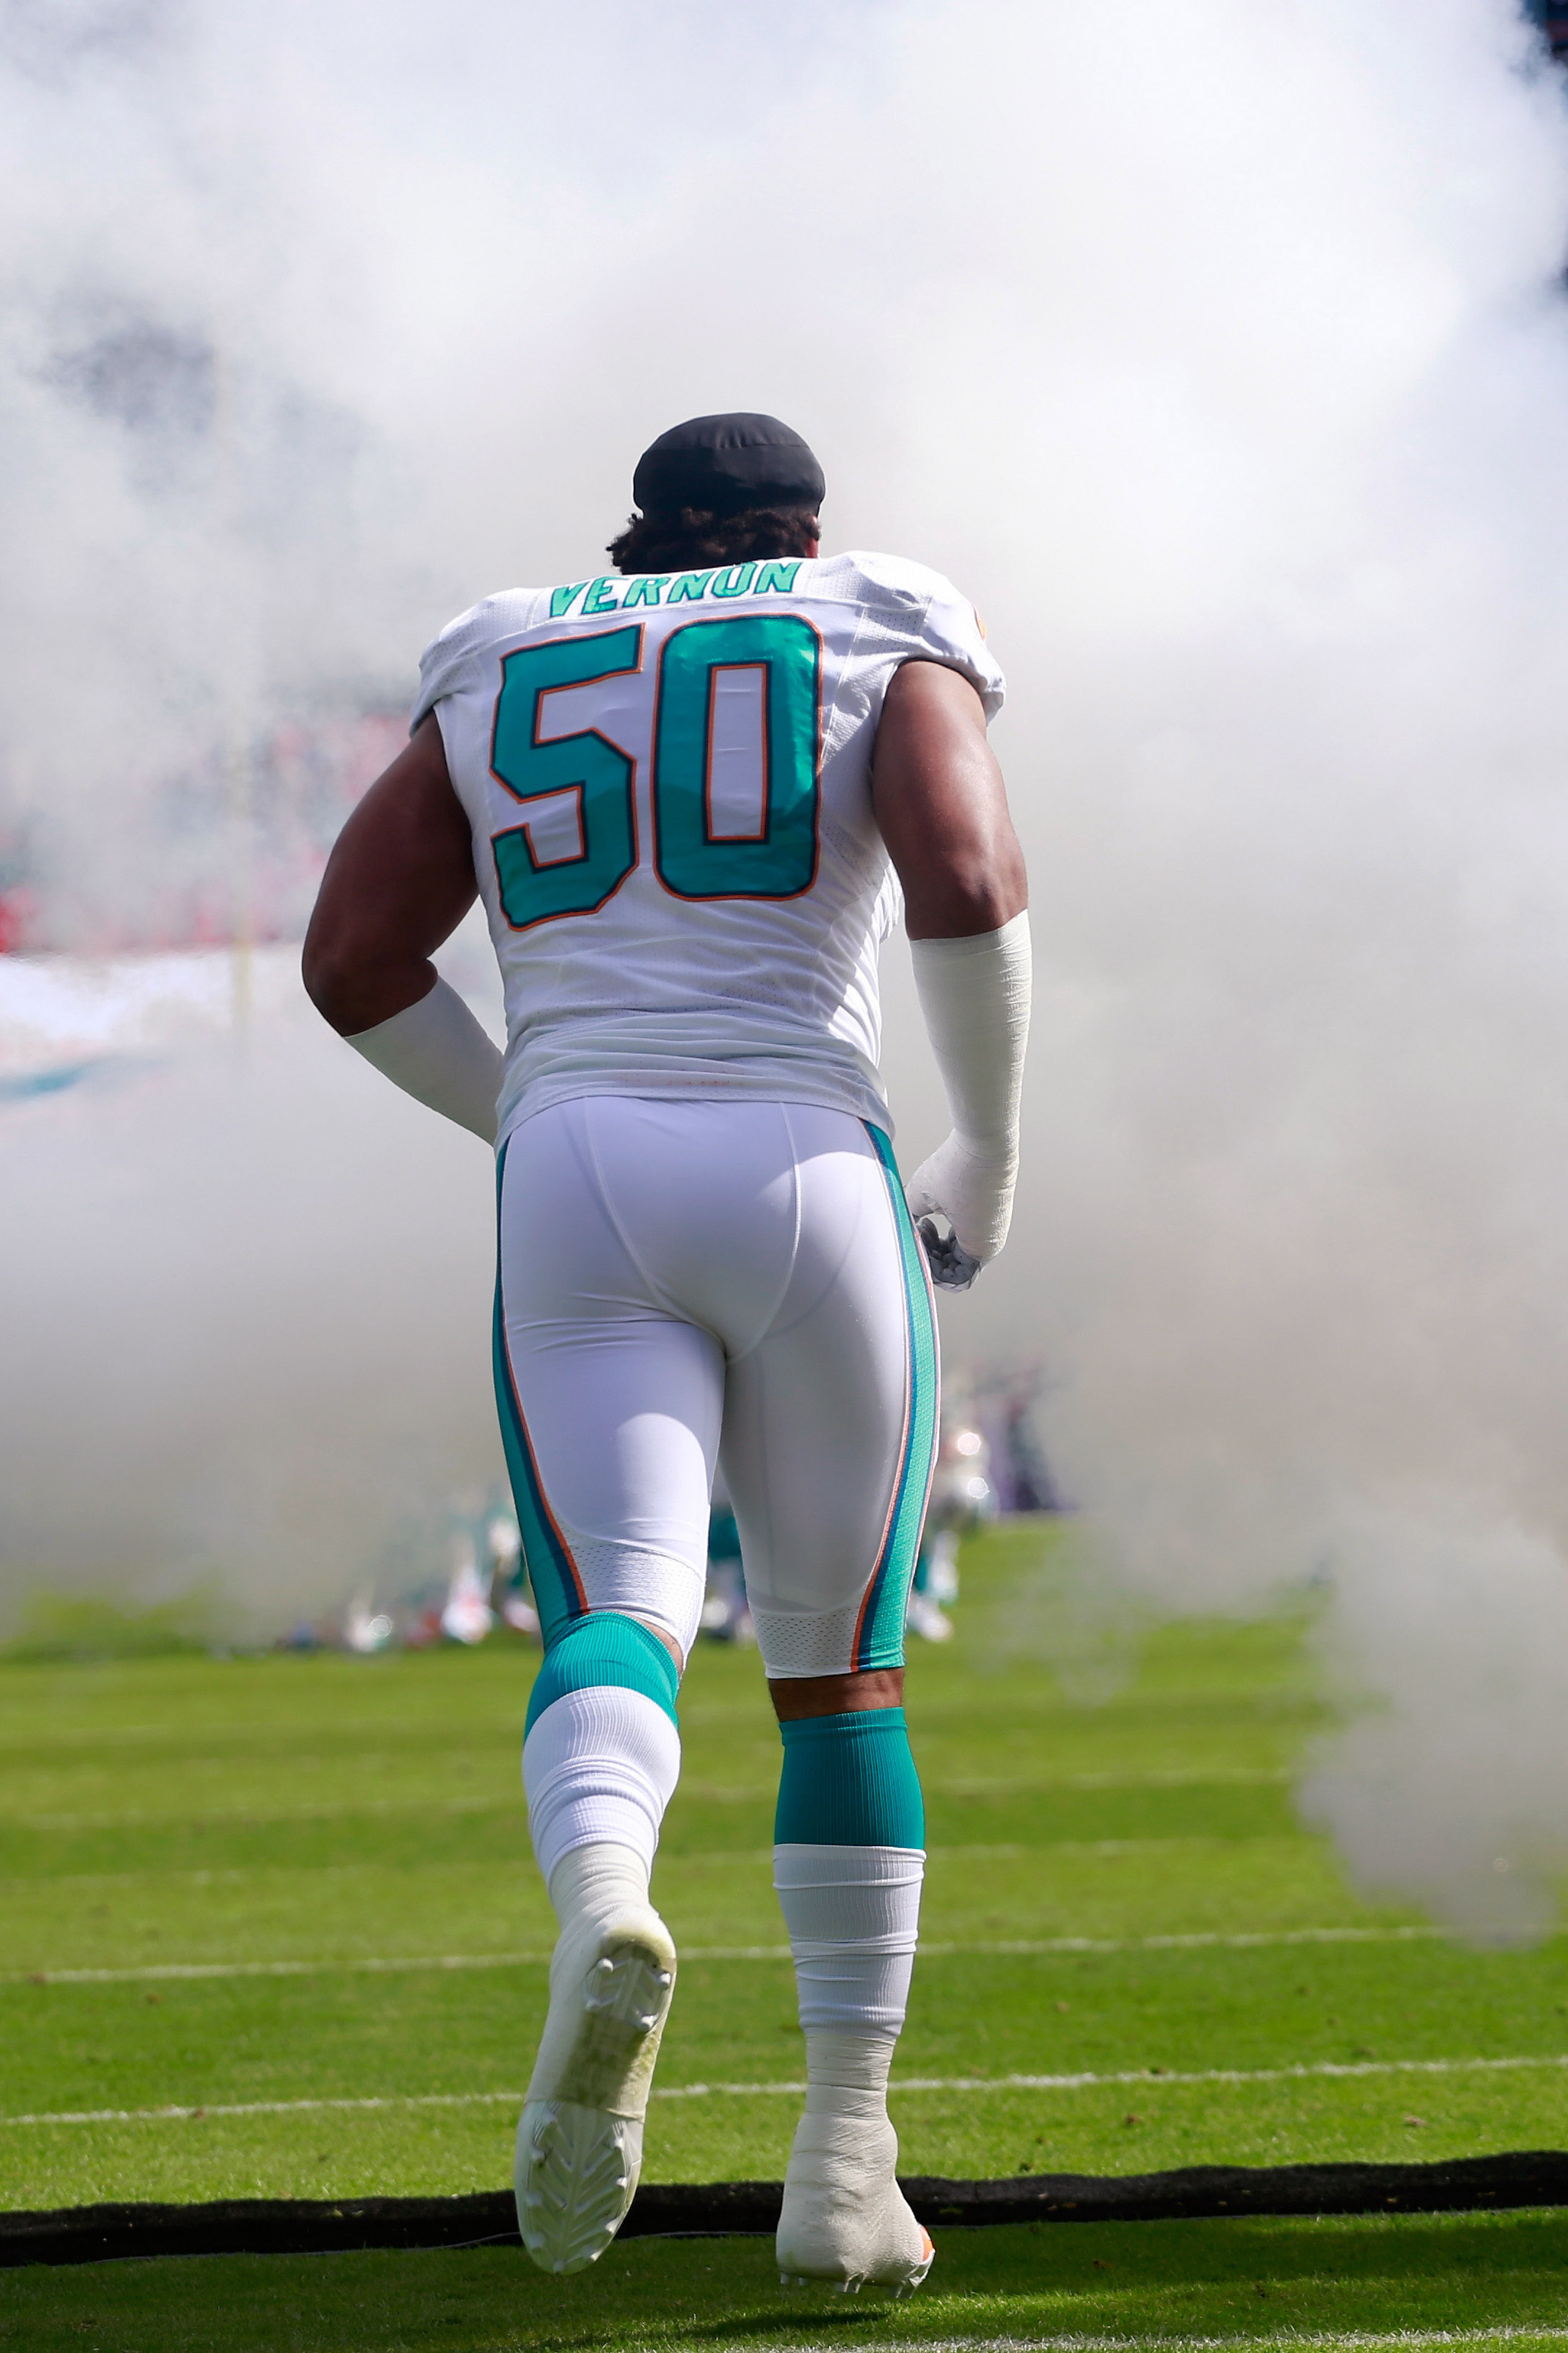 Olivier Vernon named AFC Defensive Player of the Week The Phinsider